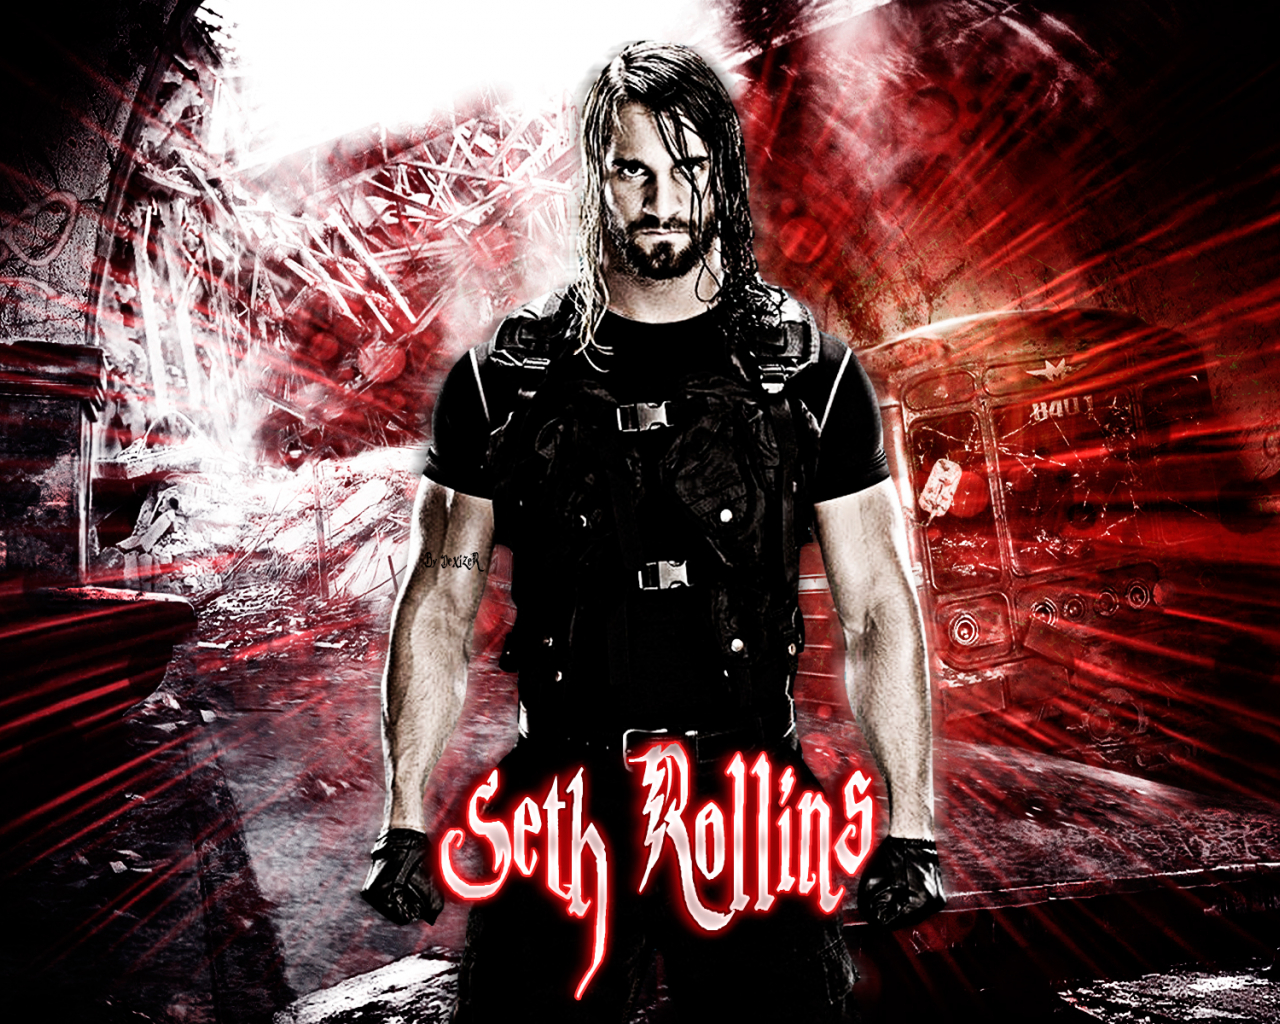 Free download New WWE Seth Rollins 2014